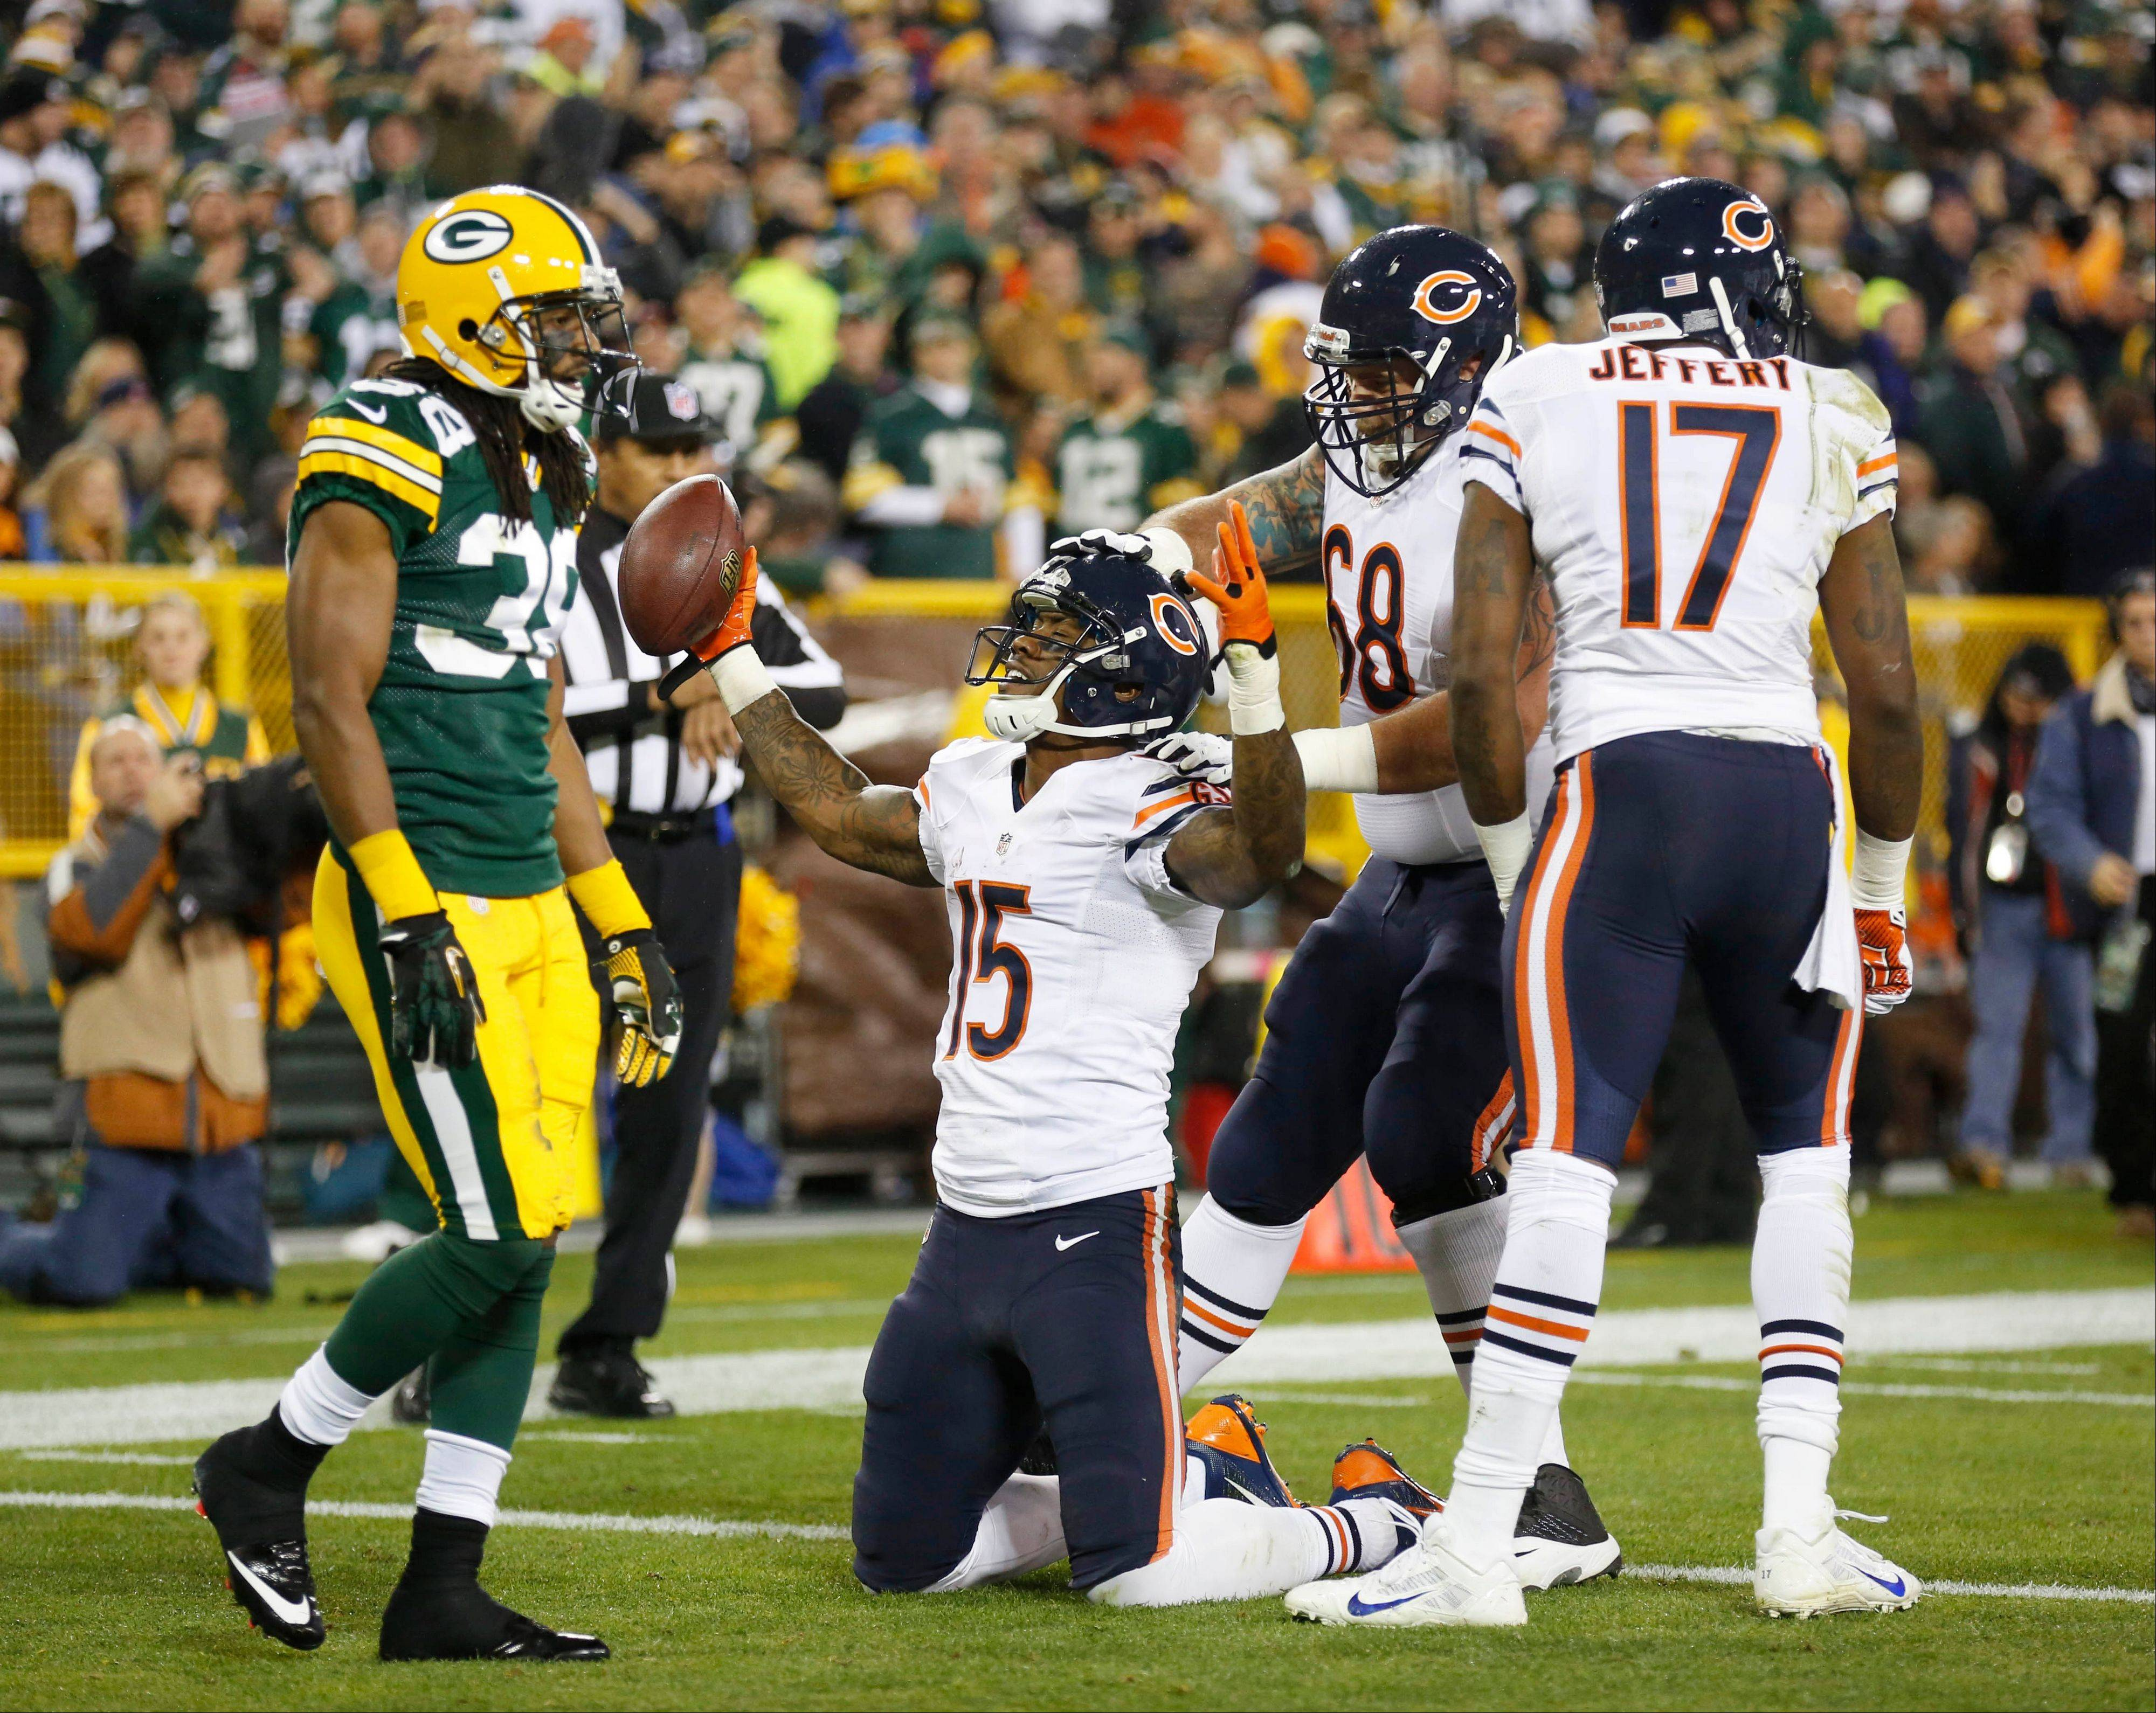 Chicago Bears' Brandon Marshall celebrates after a touchdown reception during the first half.